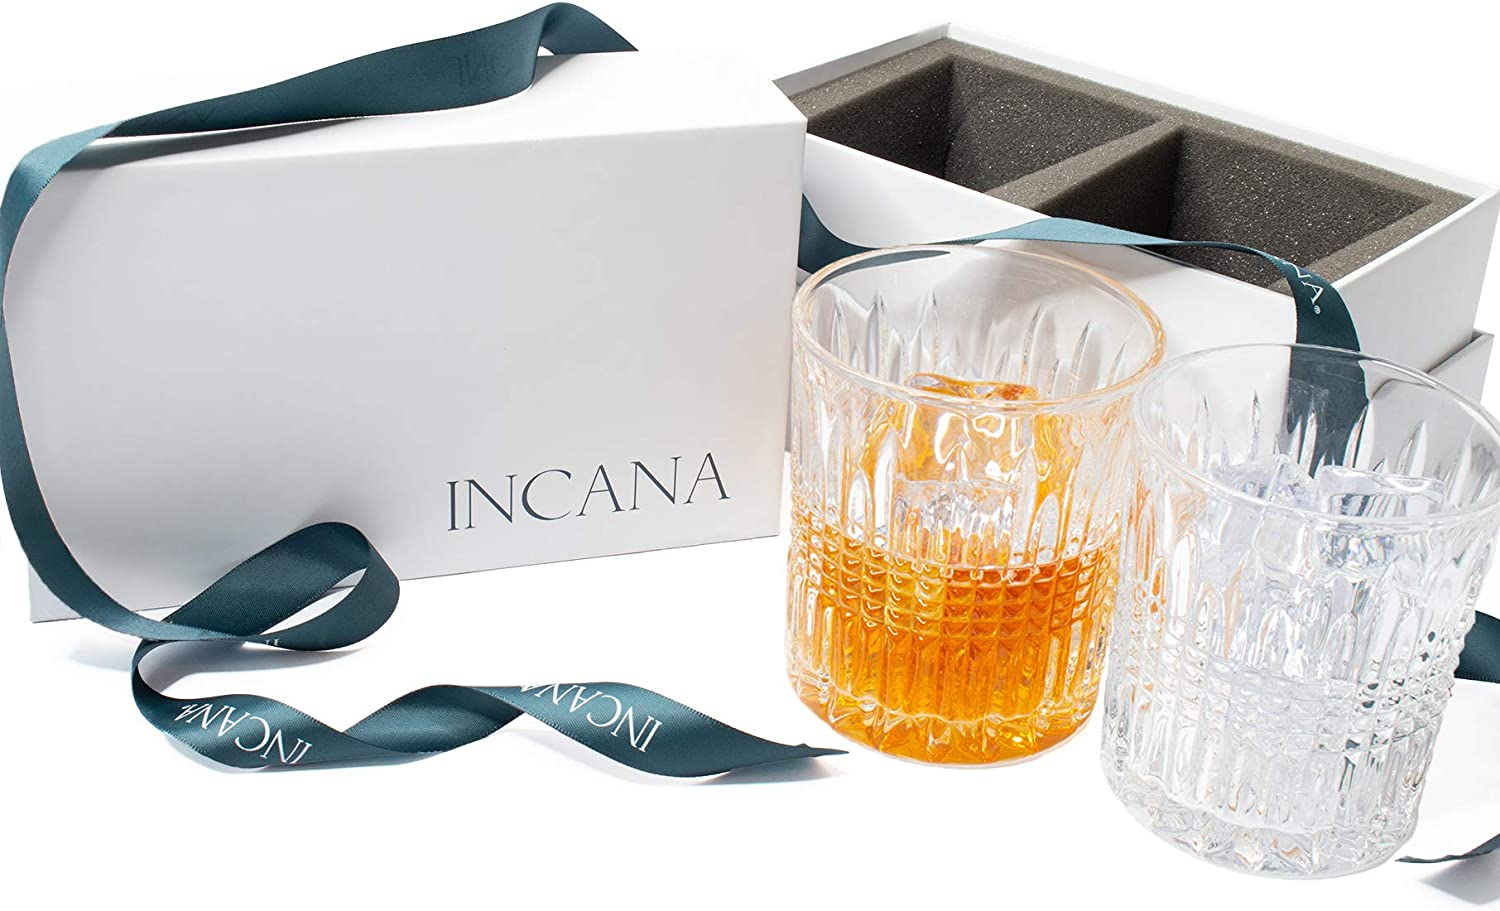 INCANA Whisky Glasses, Art Deco Gatsby Collection | Premium Quality Set of 2 Old Fashion Cocktail, Tumbler Glasses, Stunning Lead Free Ultra-Clarity Crystal Clear Glass | stylish Gift Box with Ribbon